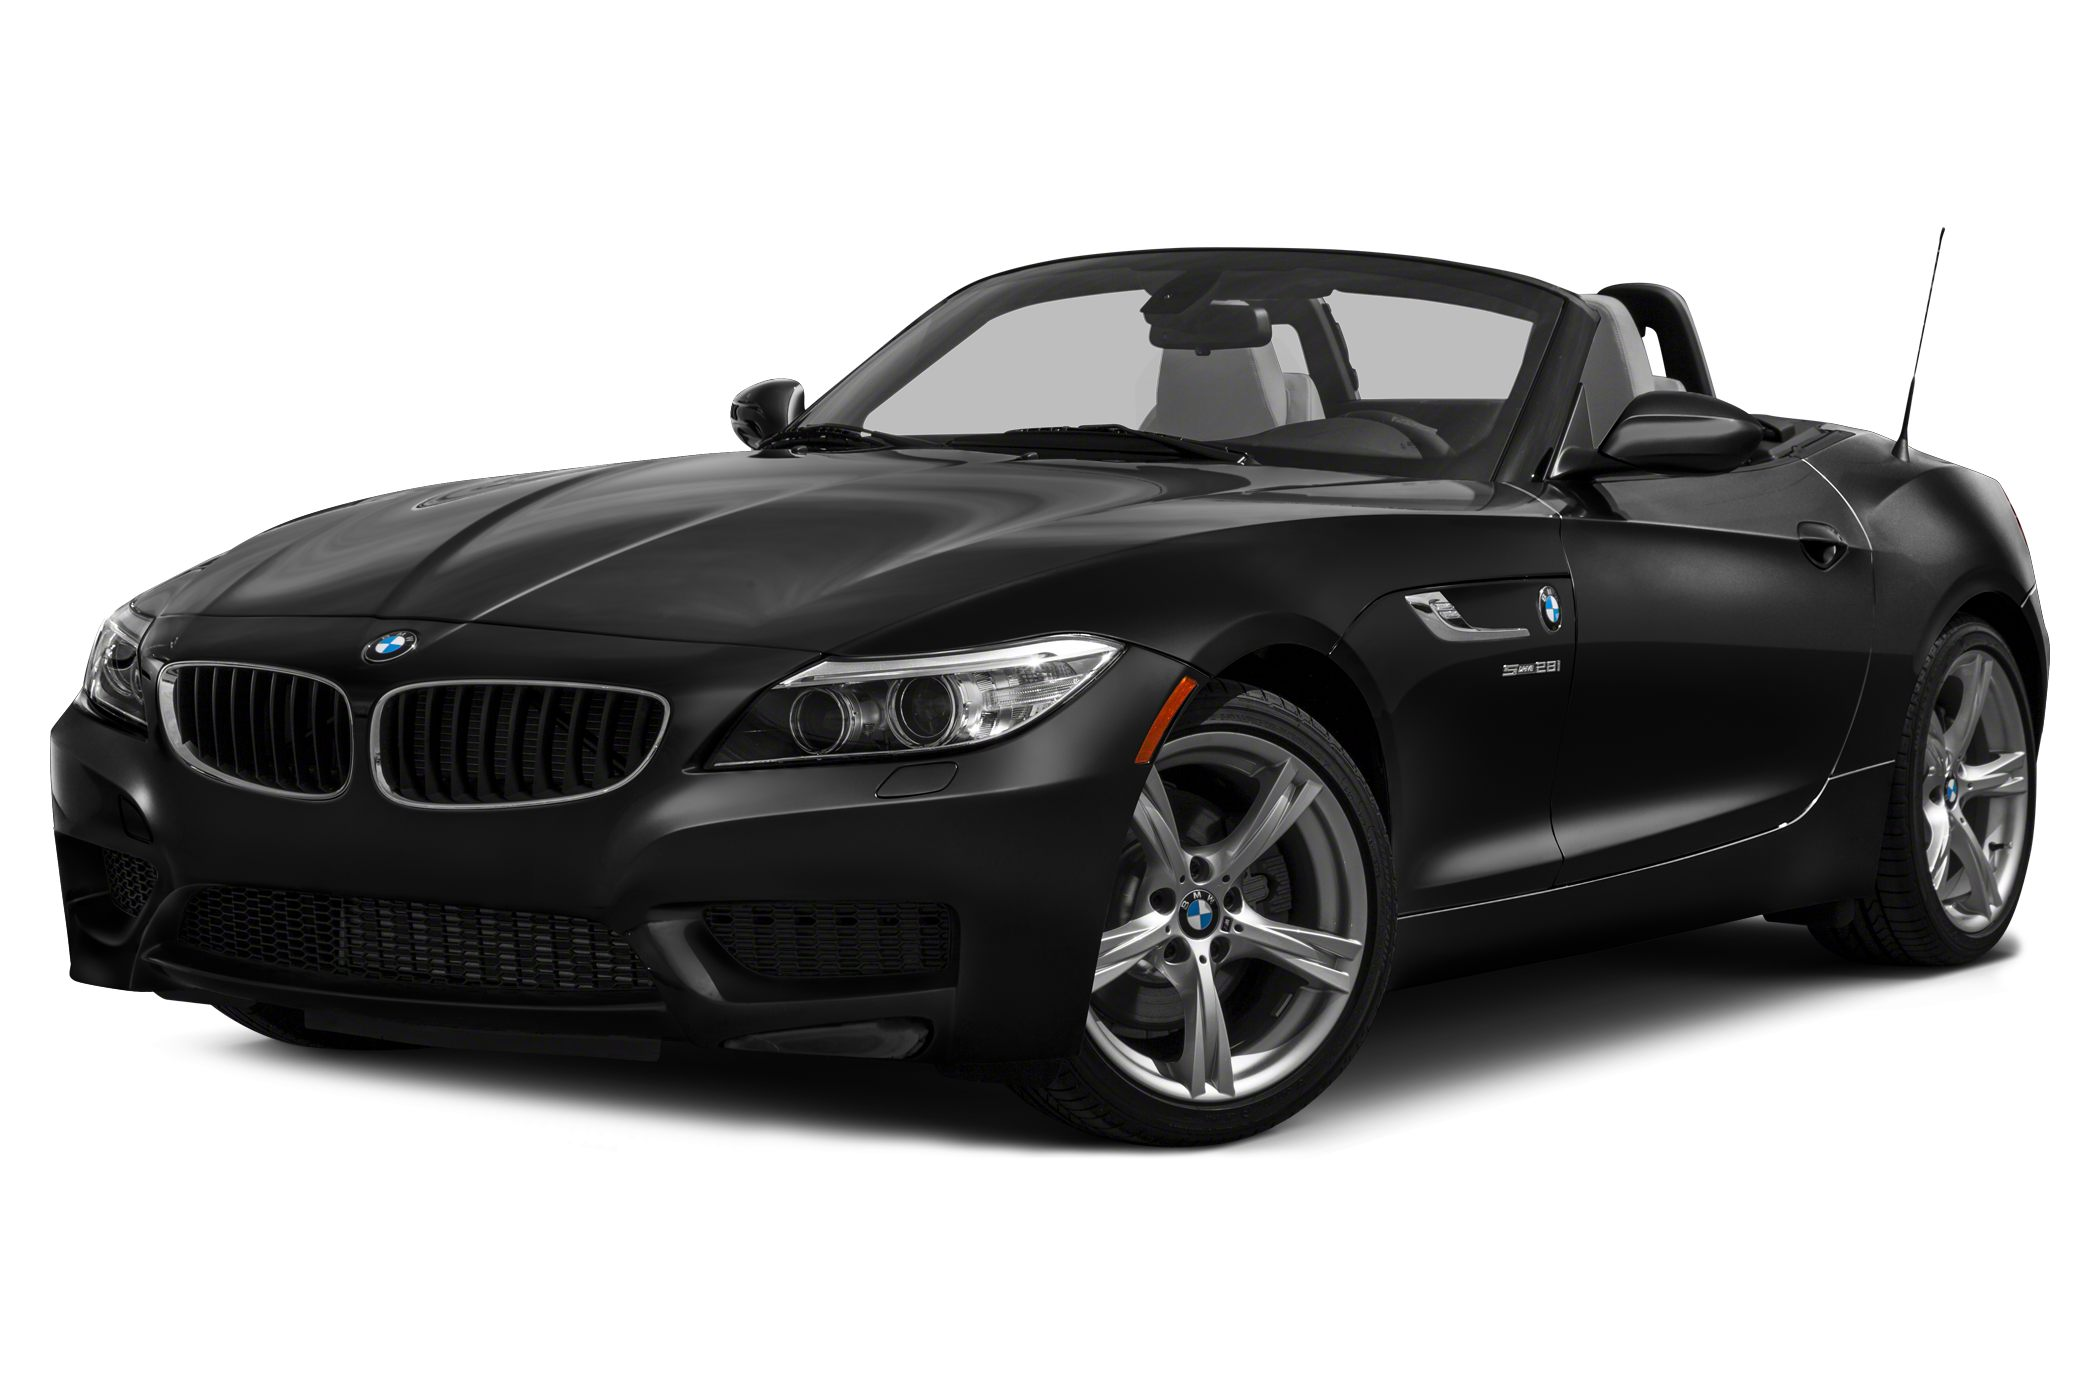 2017 Bmw Z4 Pricing And Specs